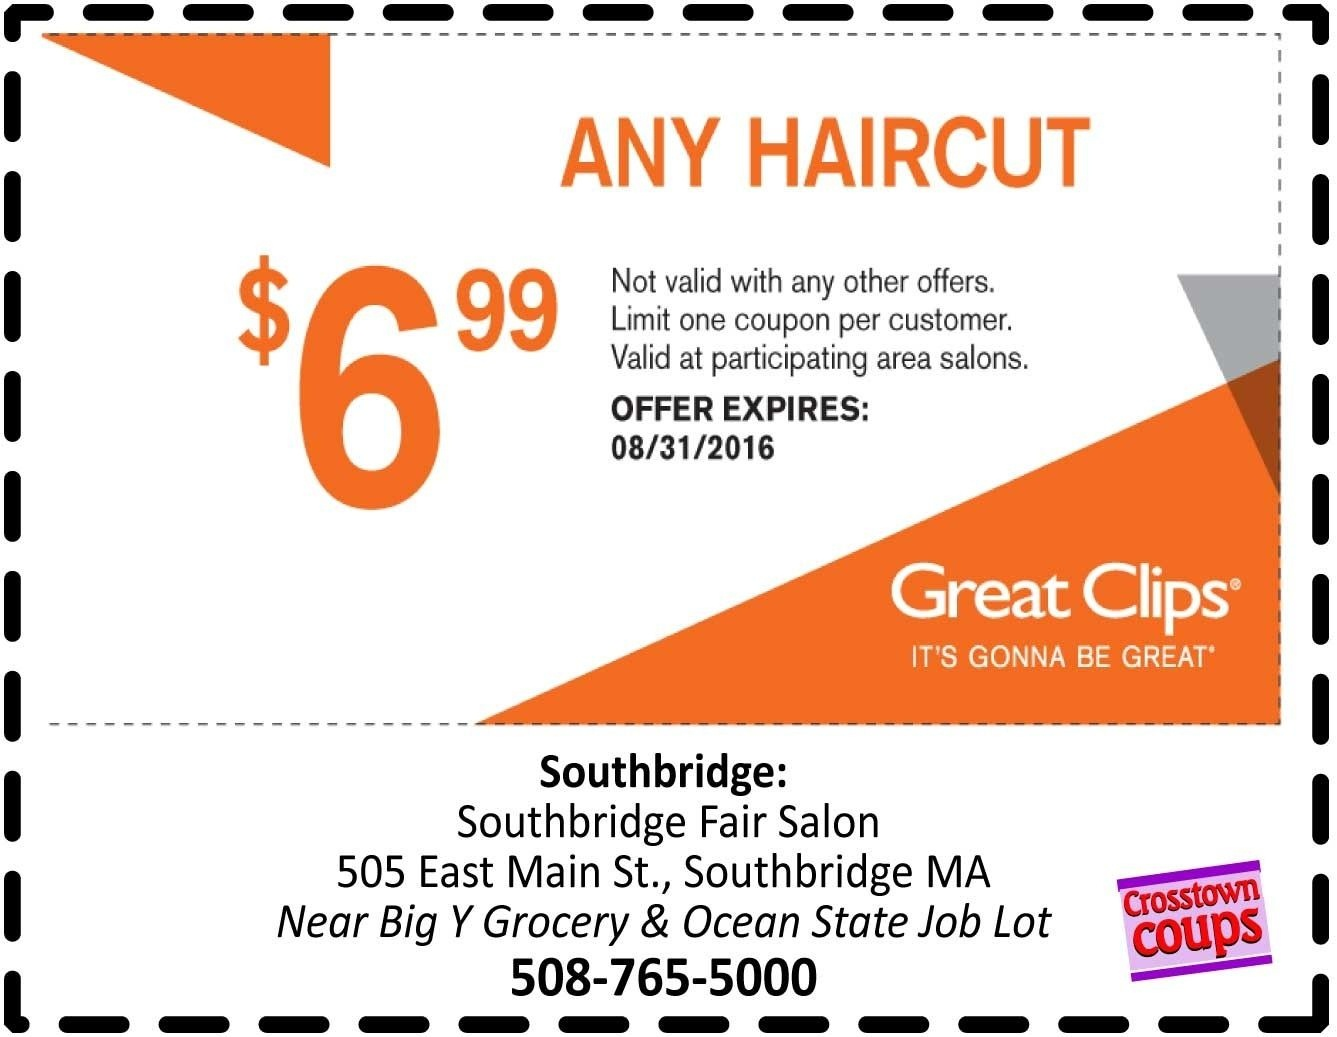 Great Clips Haircut Sale - Easy Wedding 2017 - Wedding.brainjobs - Sports Clips Free Haircut Printable Coupon